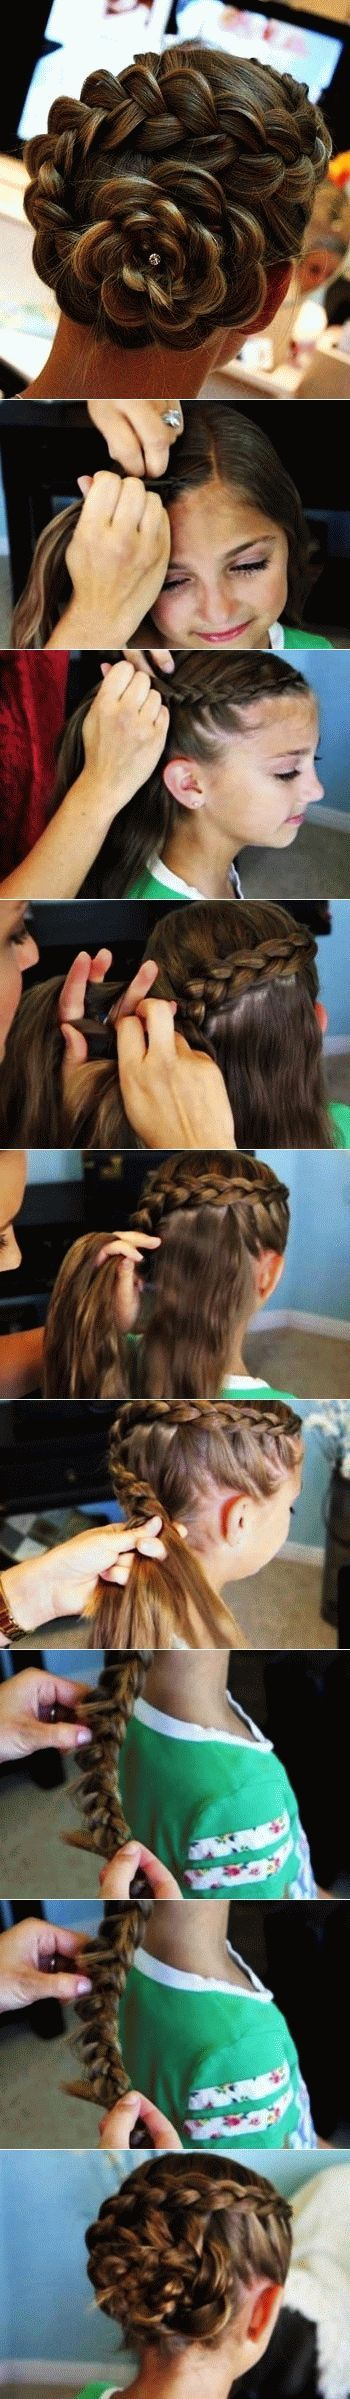 DIY Braided Flower Hair Style